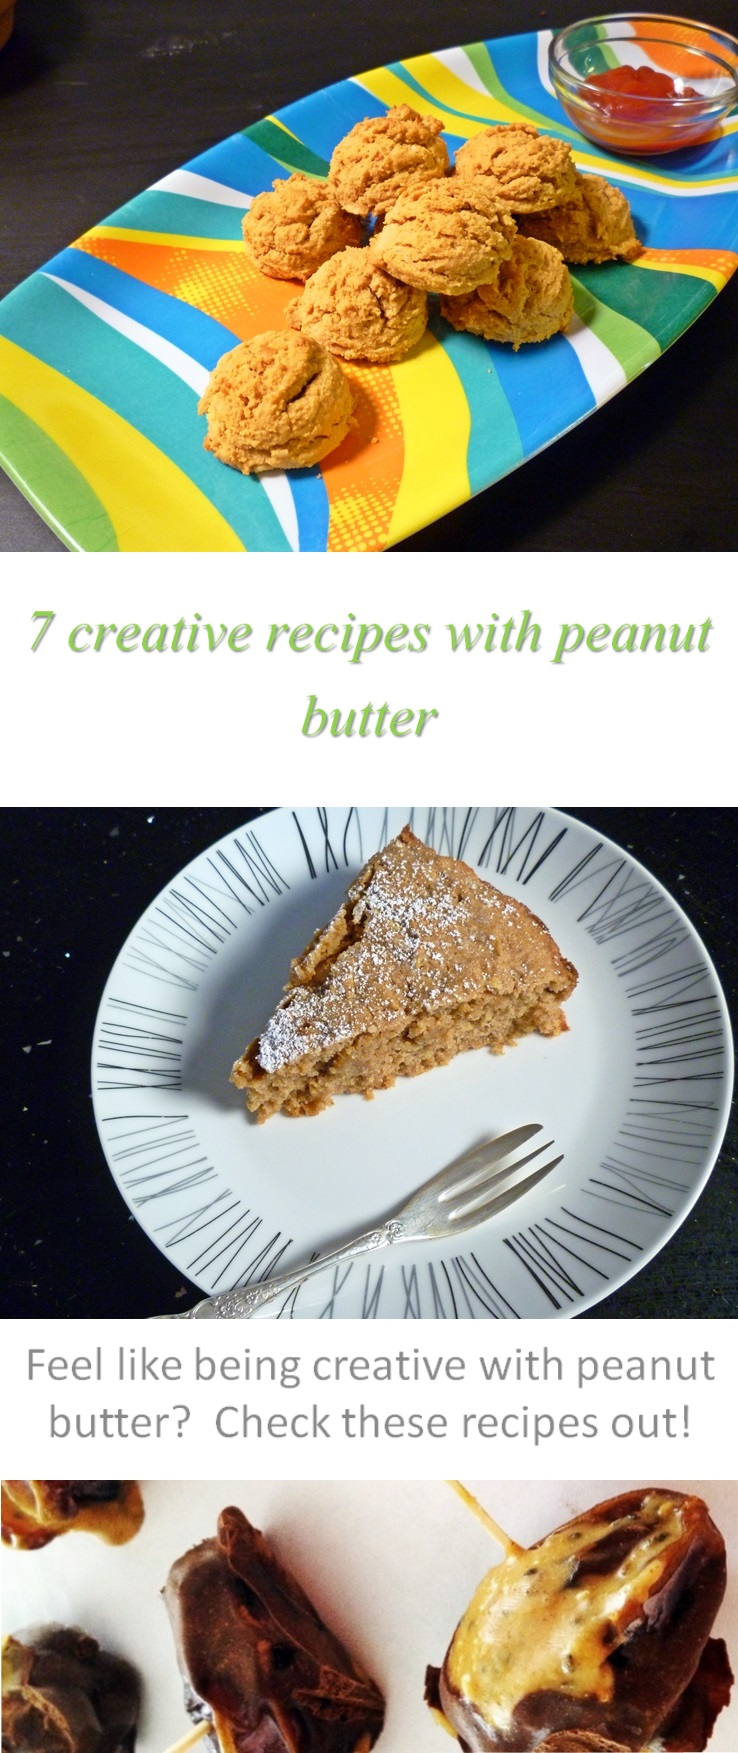 7 creative peanut butter recipes for cooking at home - all gluten and dairy-free, slightly unusual, but always tasty and family pleasing! #peanutbutter